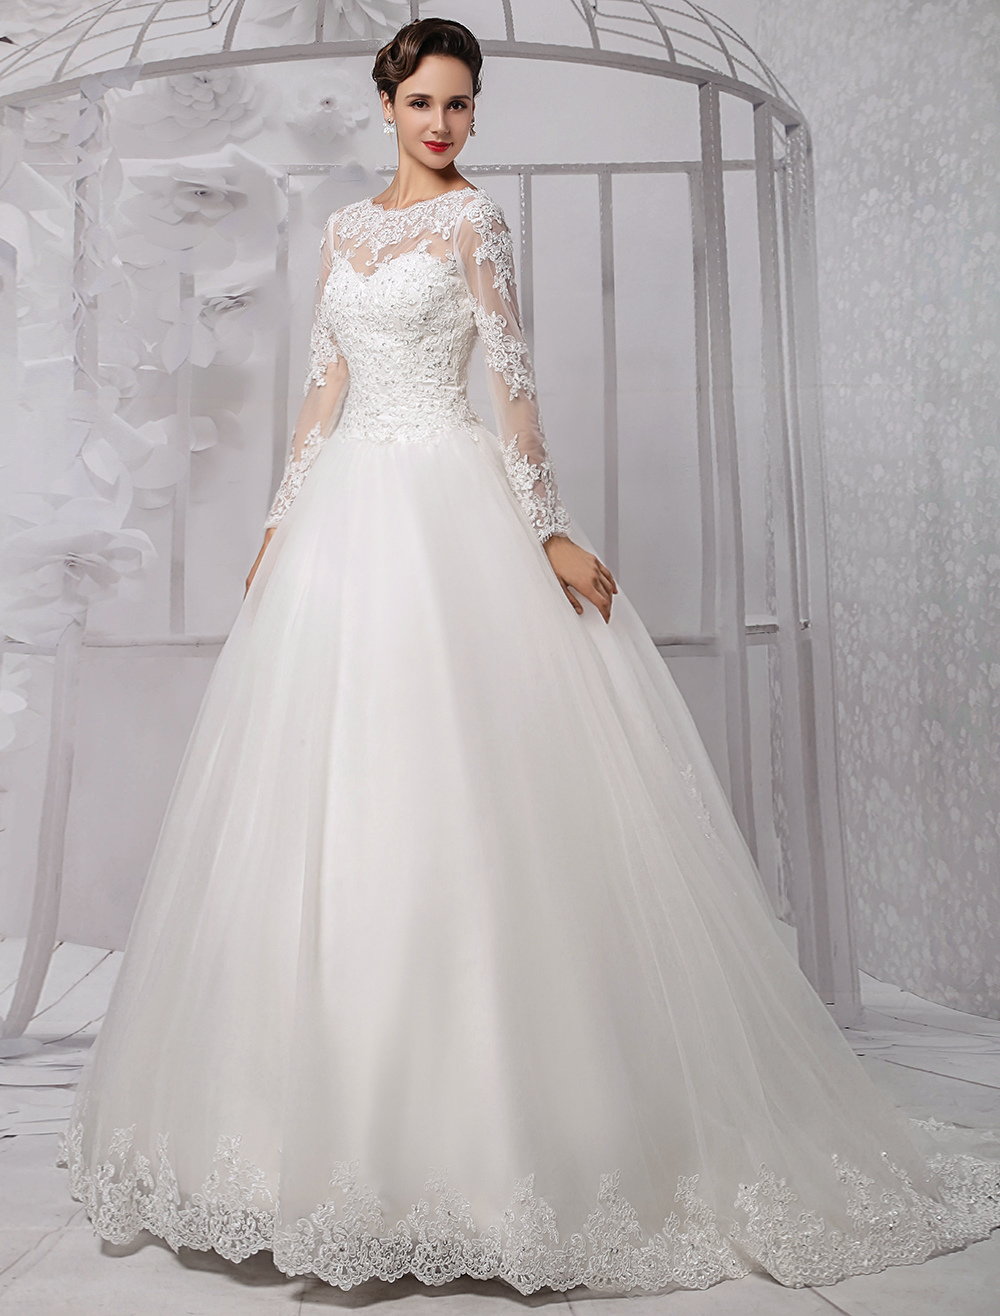 Wedding Dresses Ball Gown Long Sleeves Bridal Dress Lace Beading V Back Illusion Sweetheart Train Wedding Gown